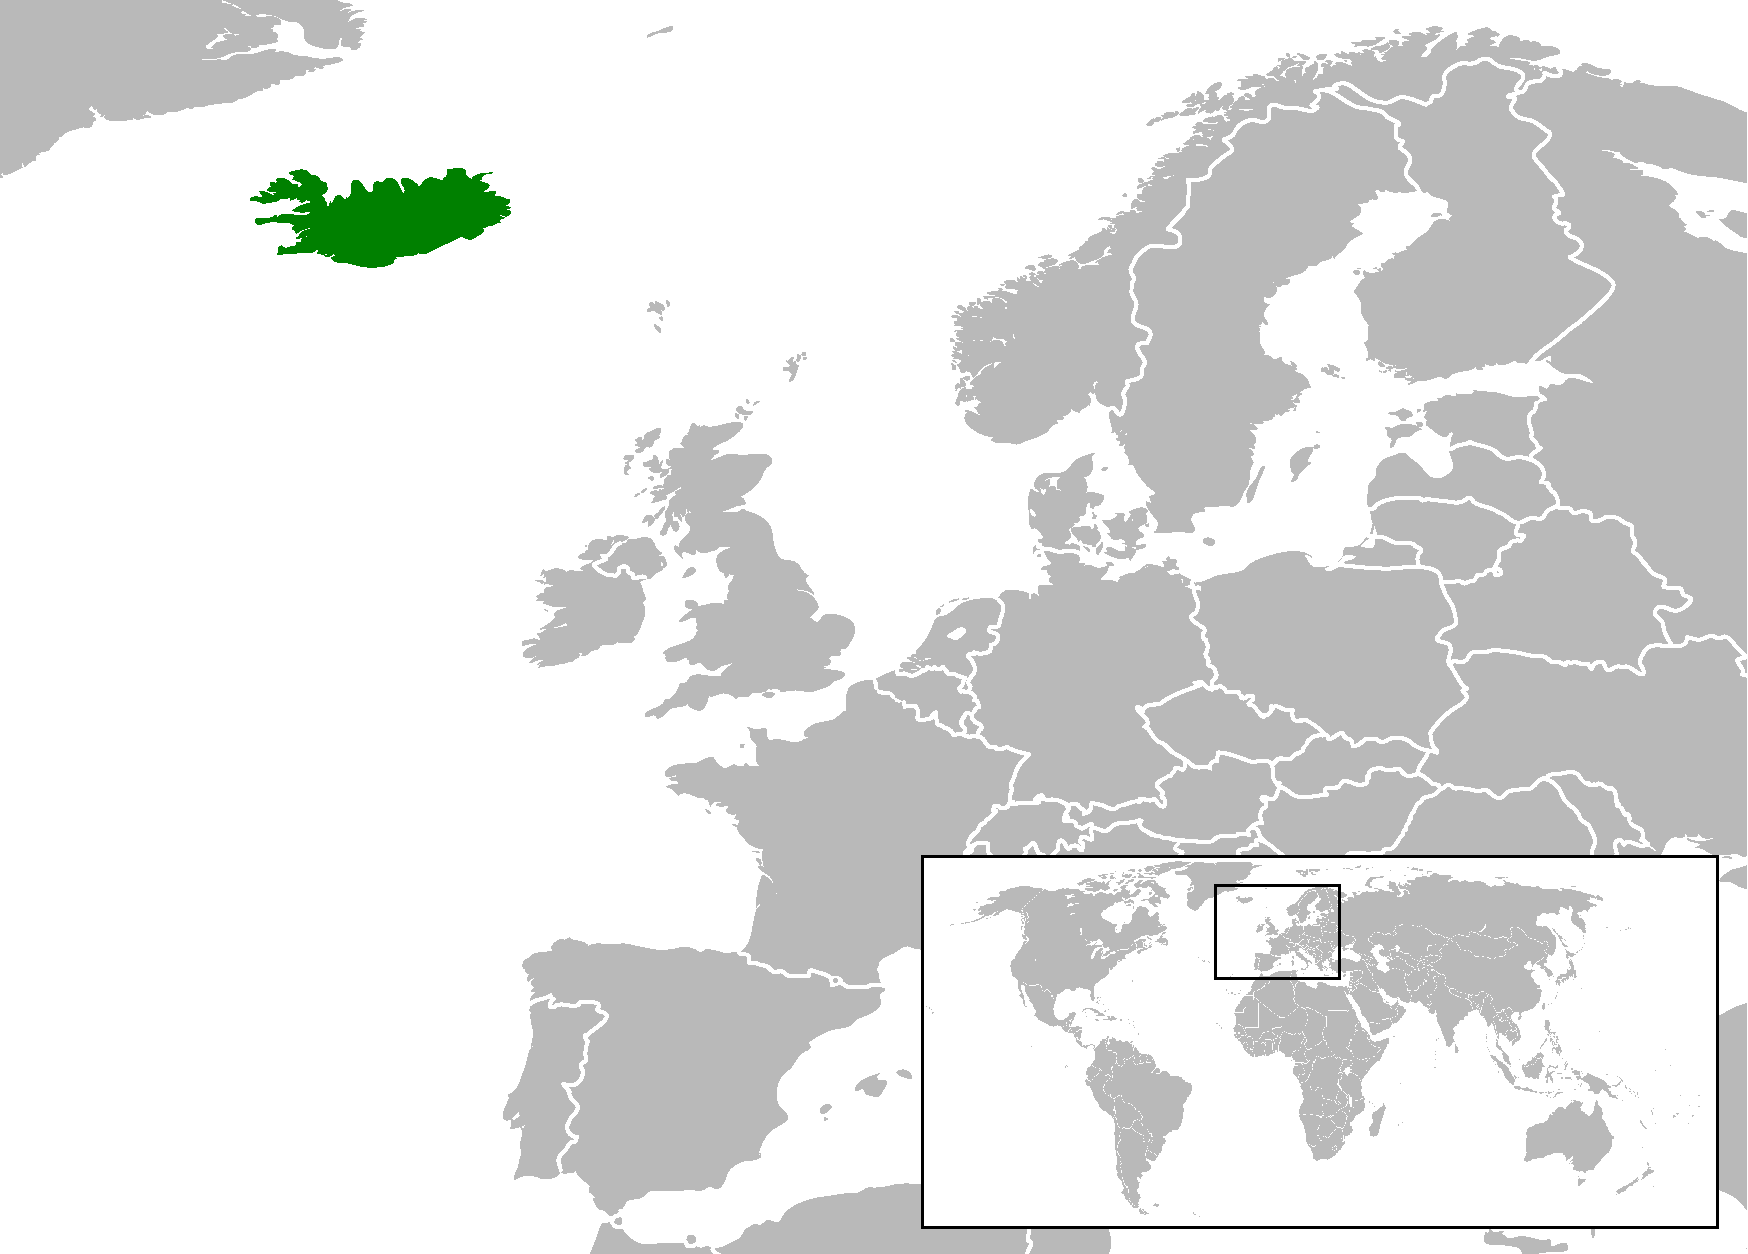 location of iceland in world map #1, block diagram, location of iceland in world map